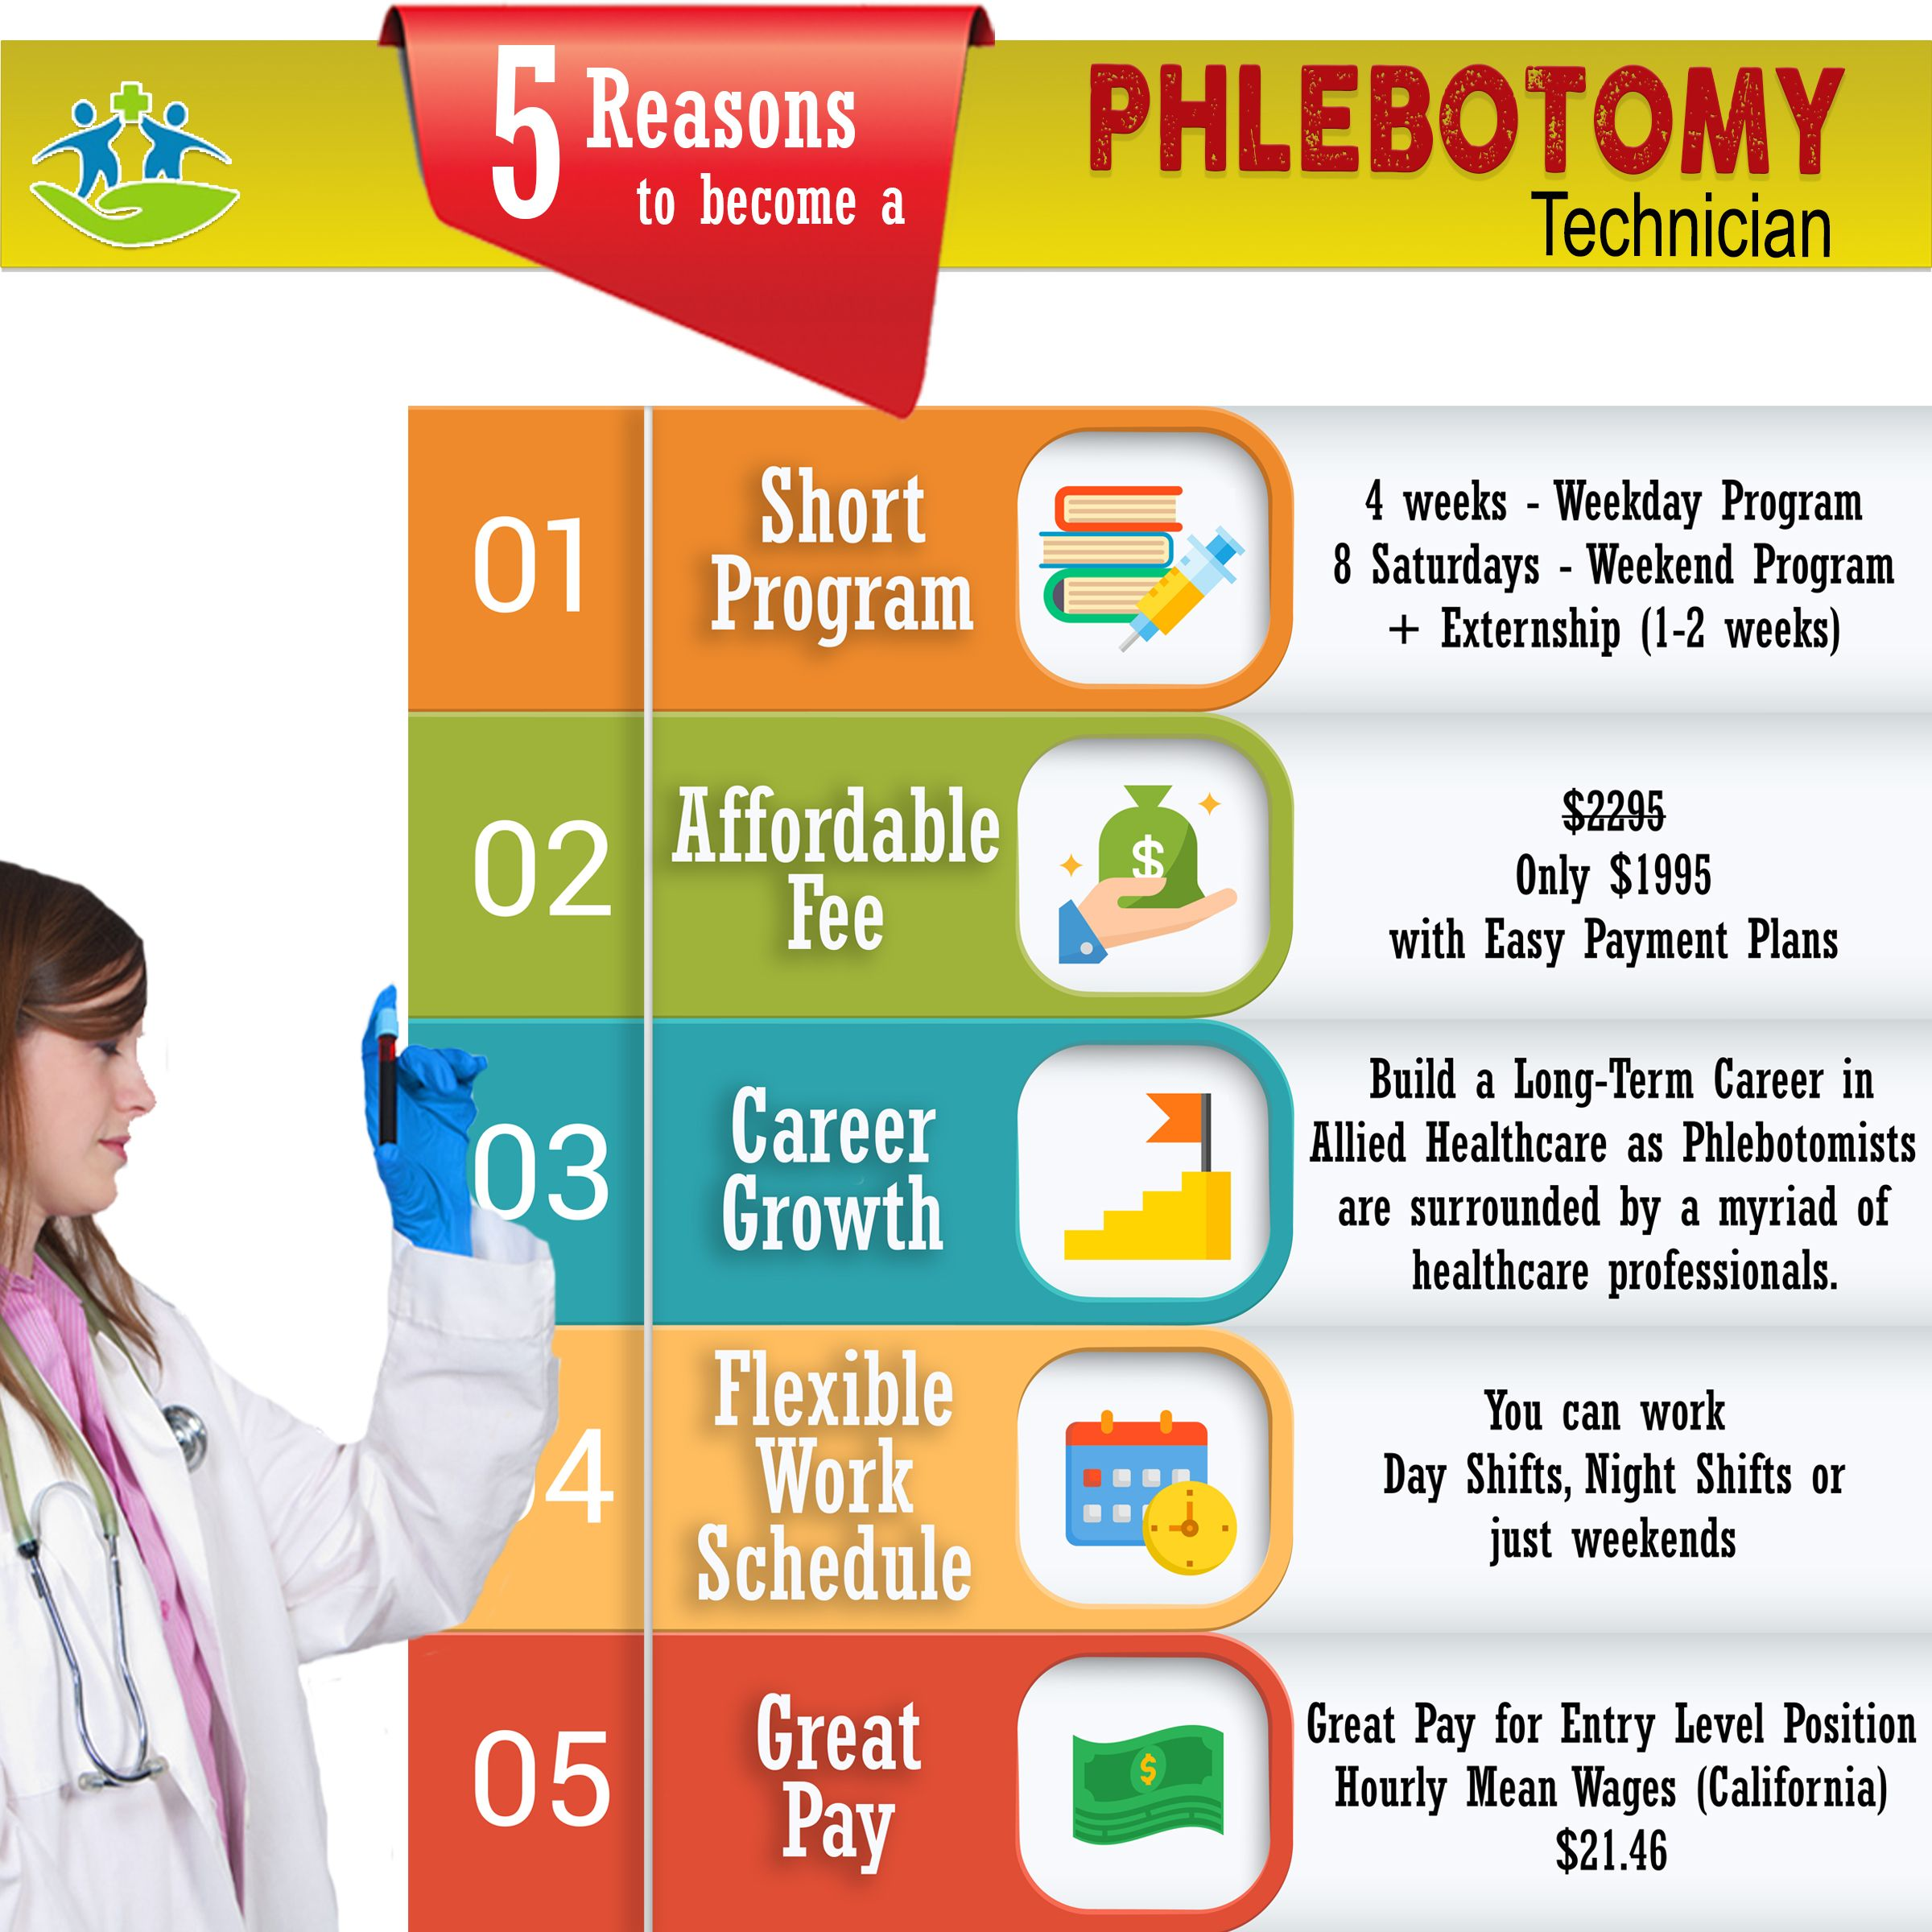 Phlebotomy Technician a rewarding healthcare field. This